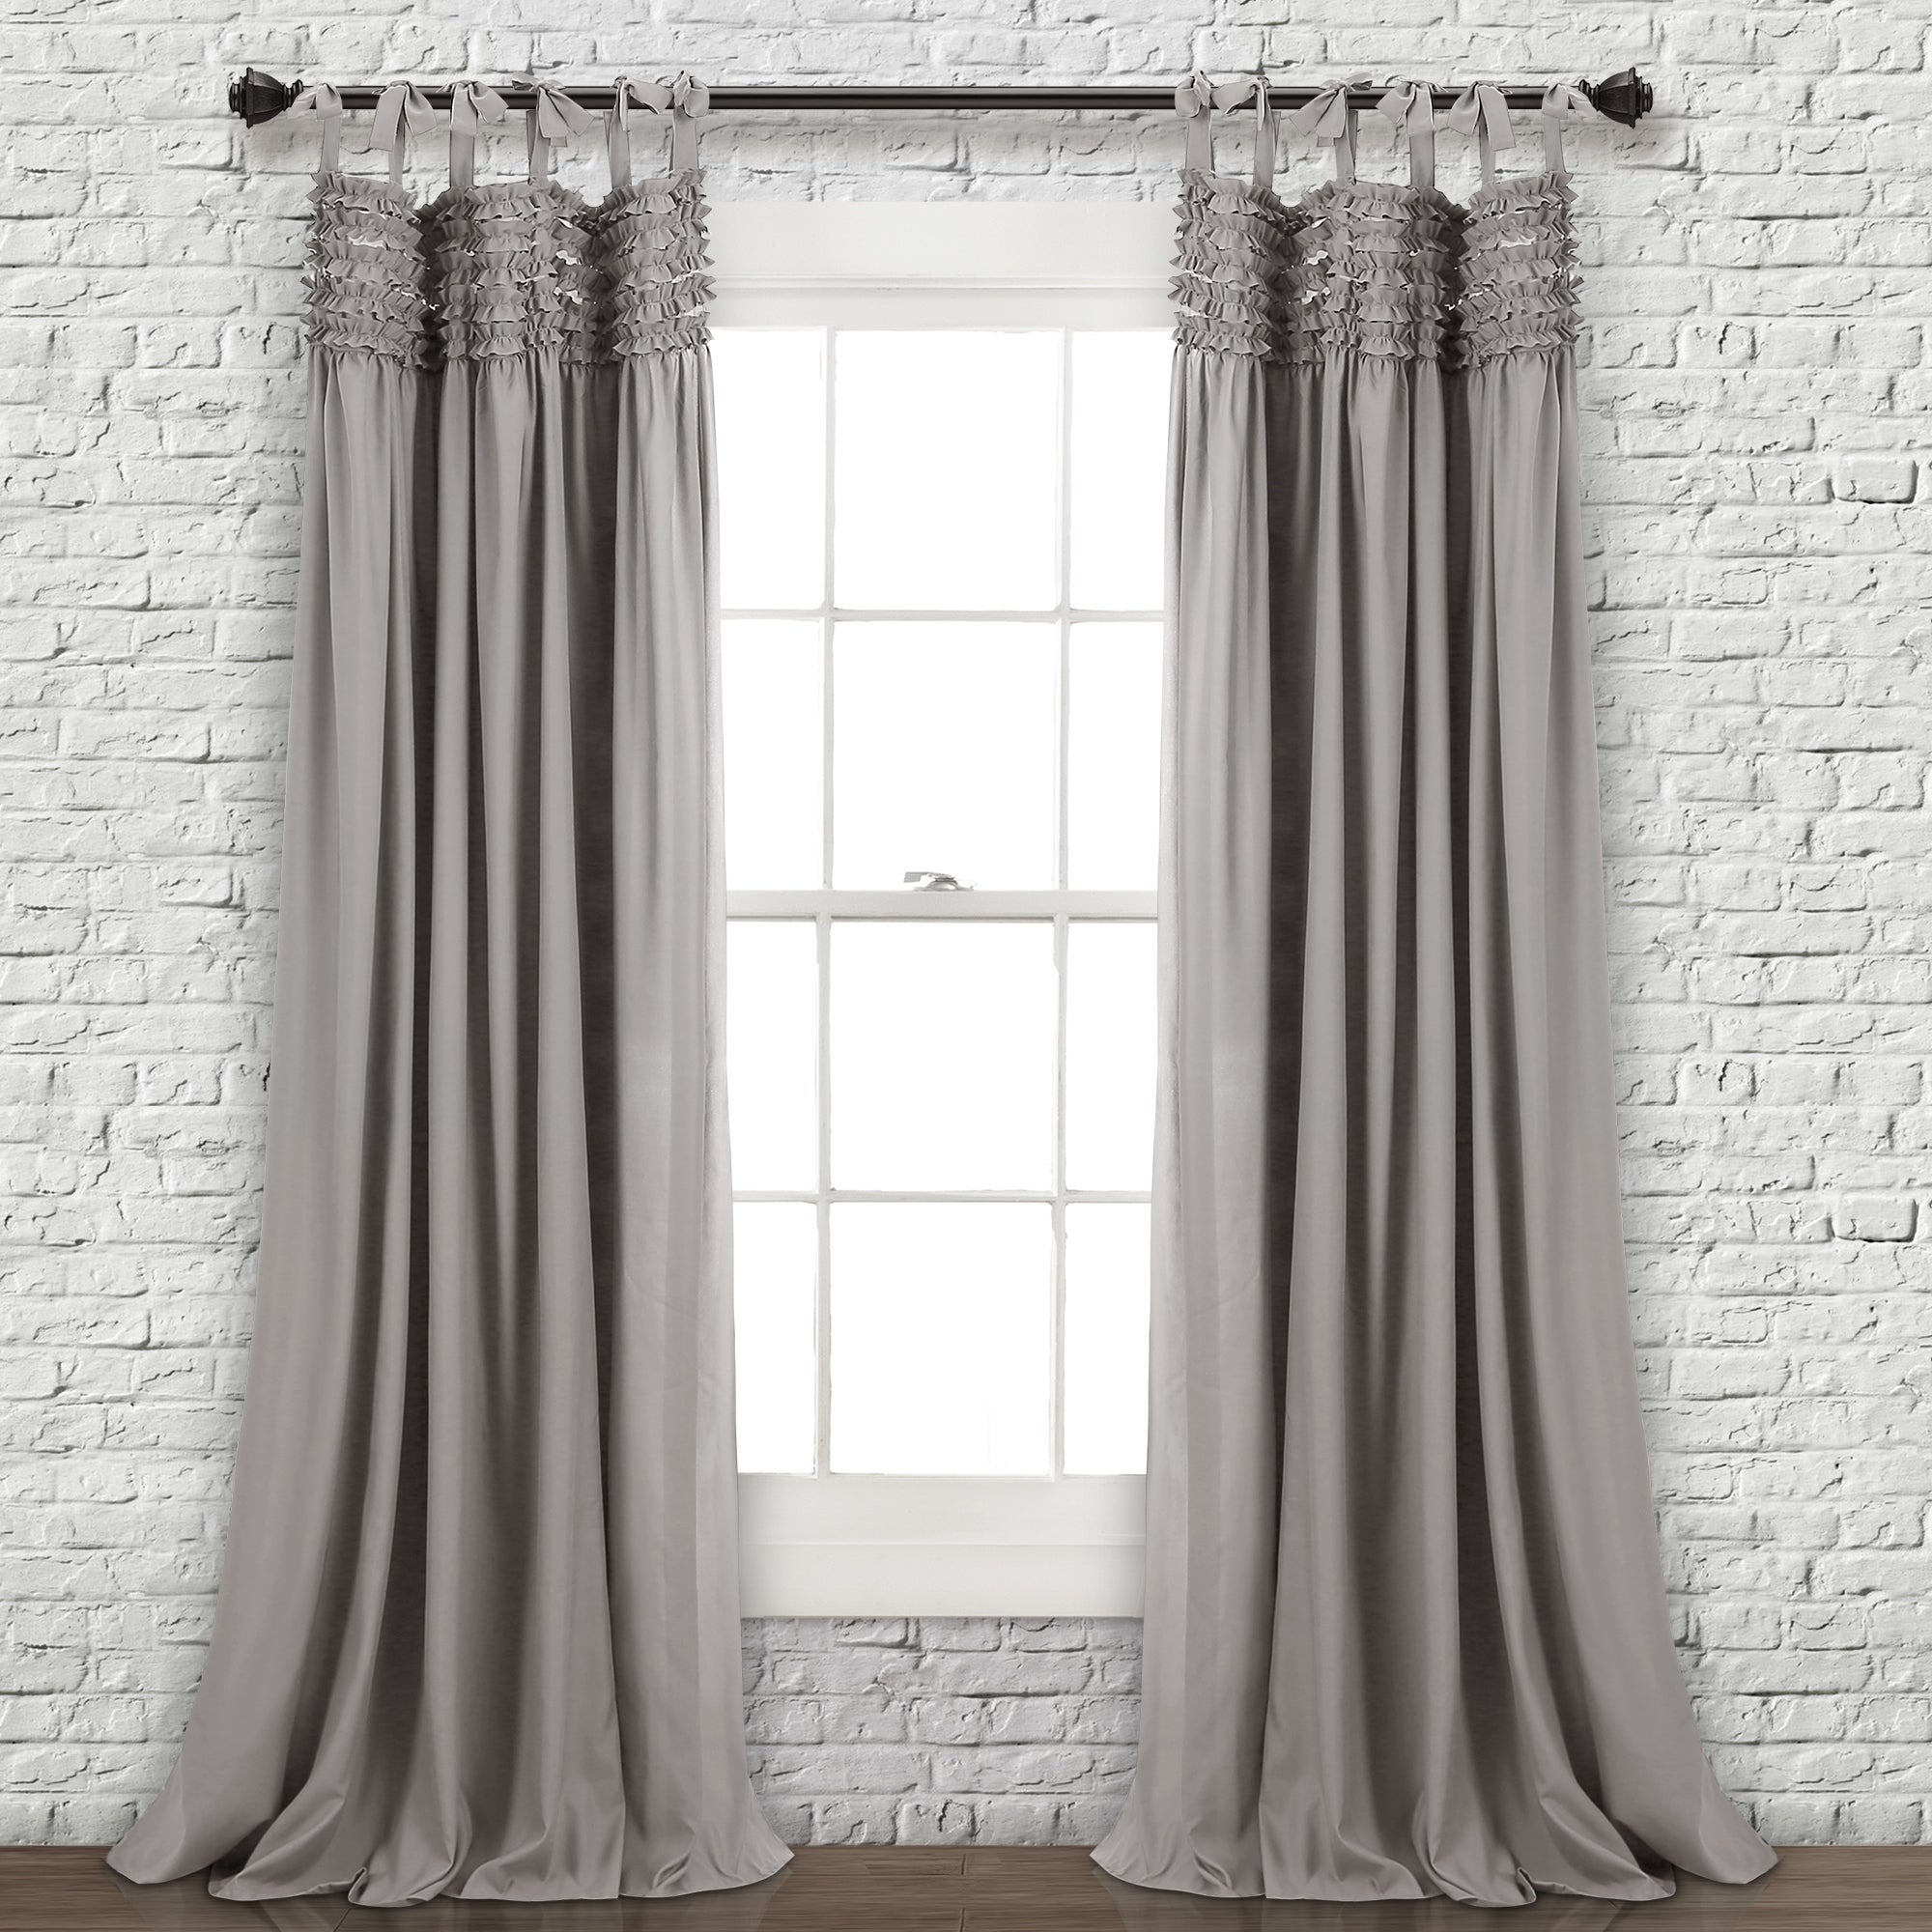 2020 Lush Decor Lydia Ruffle Window Curtain Panel Pair Intended For Lydia Ruffle Window Curtain Panel Pairs (View 2 of 20)